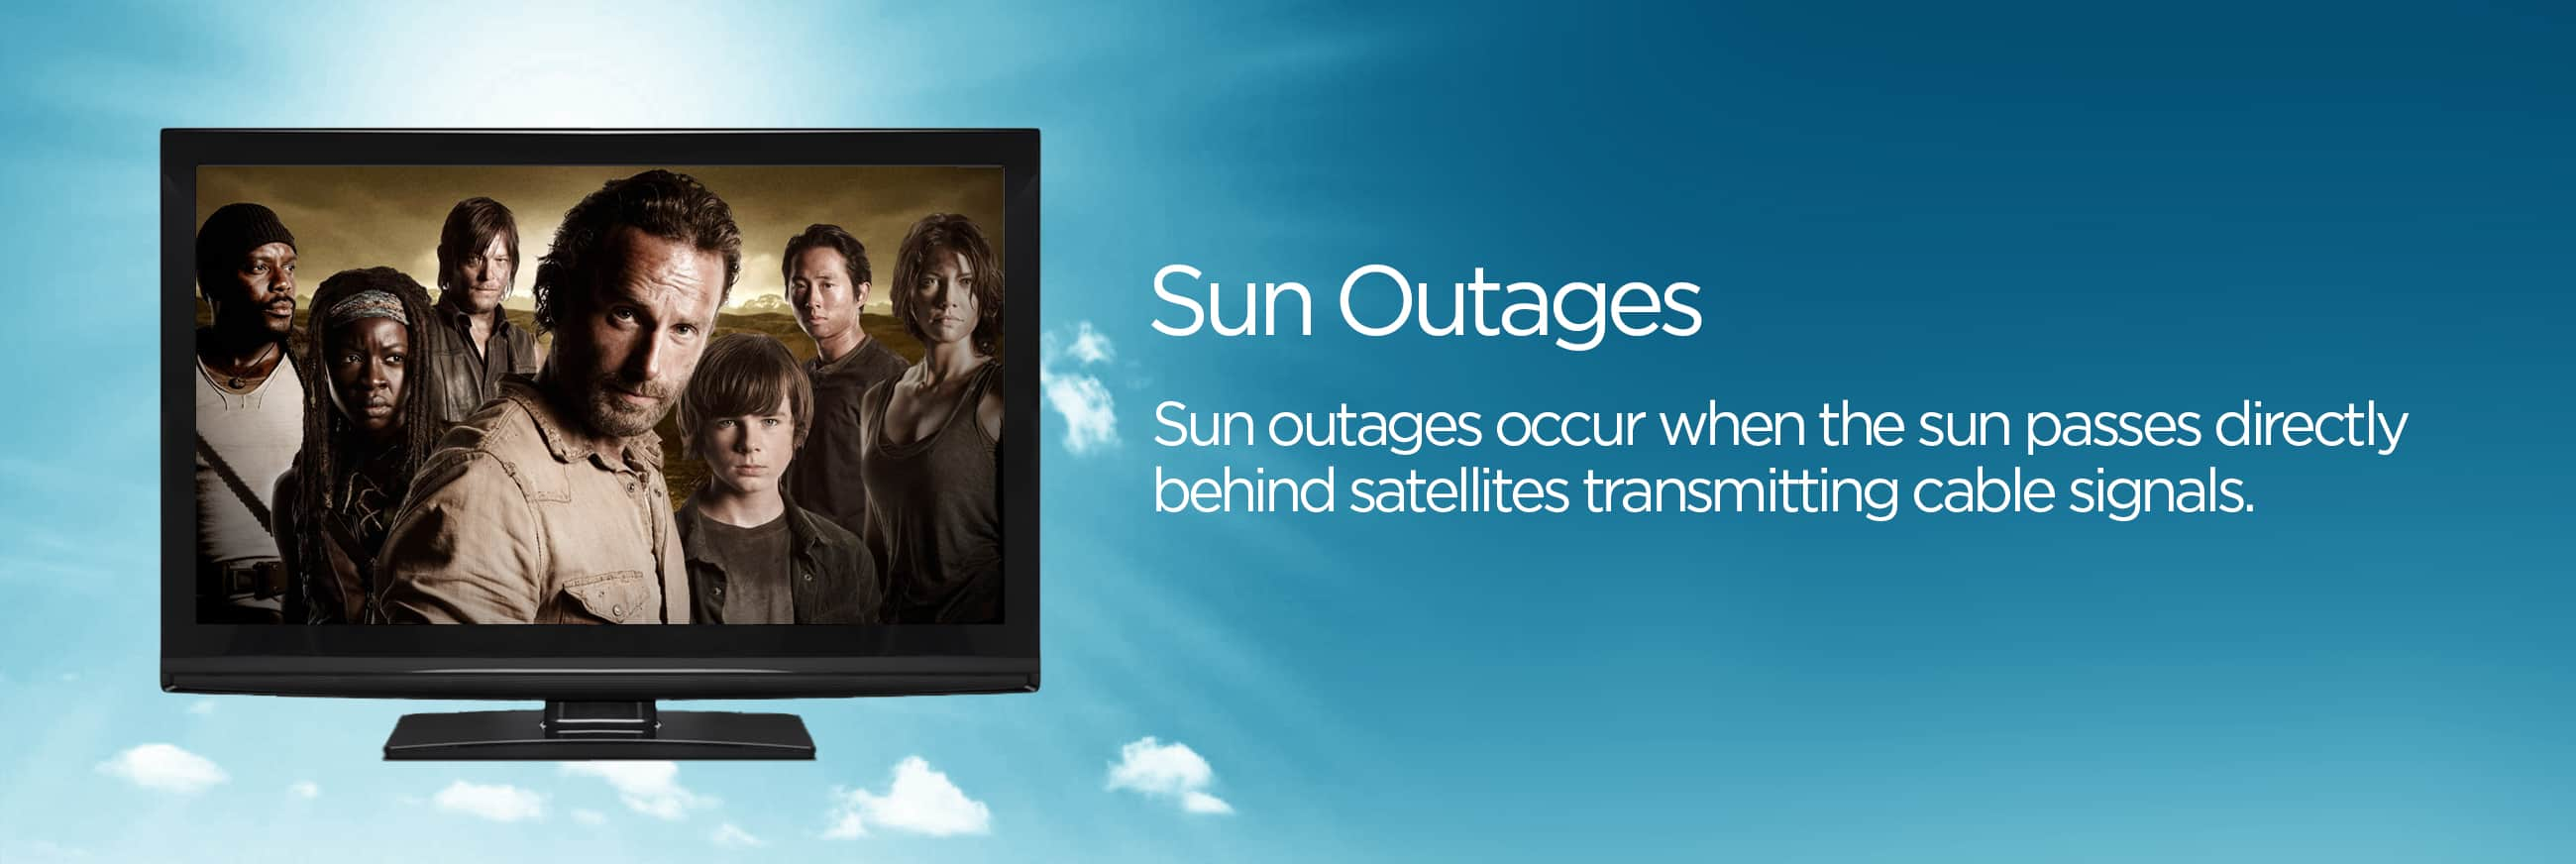 Sun Outages